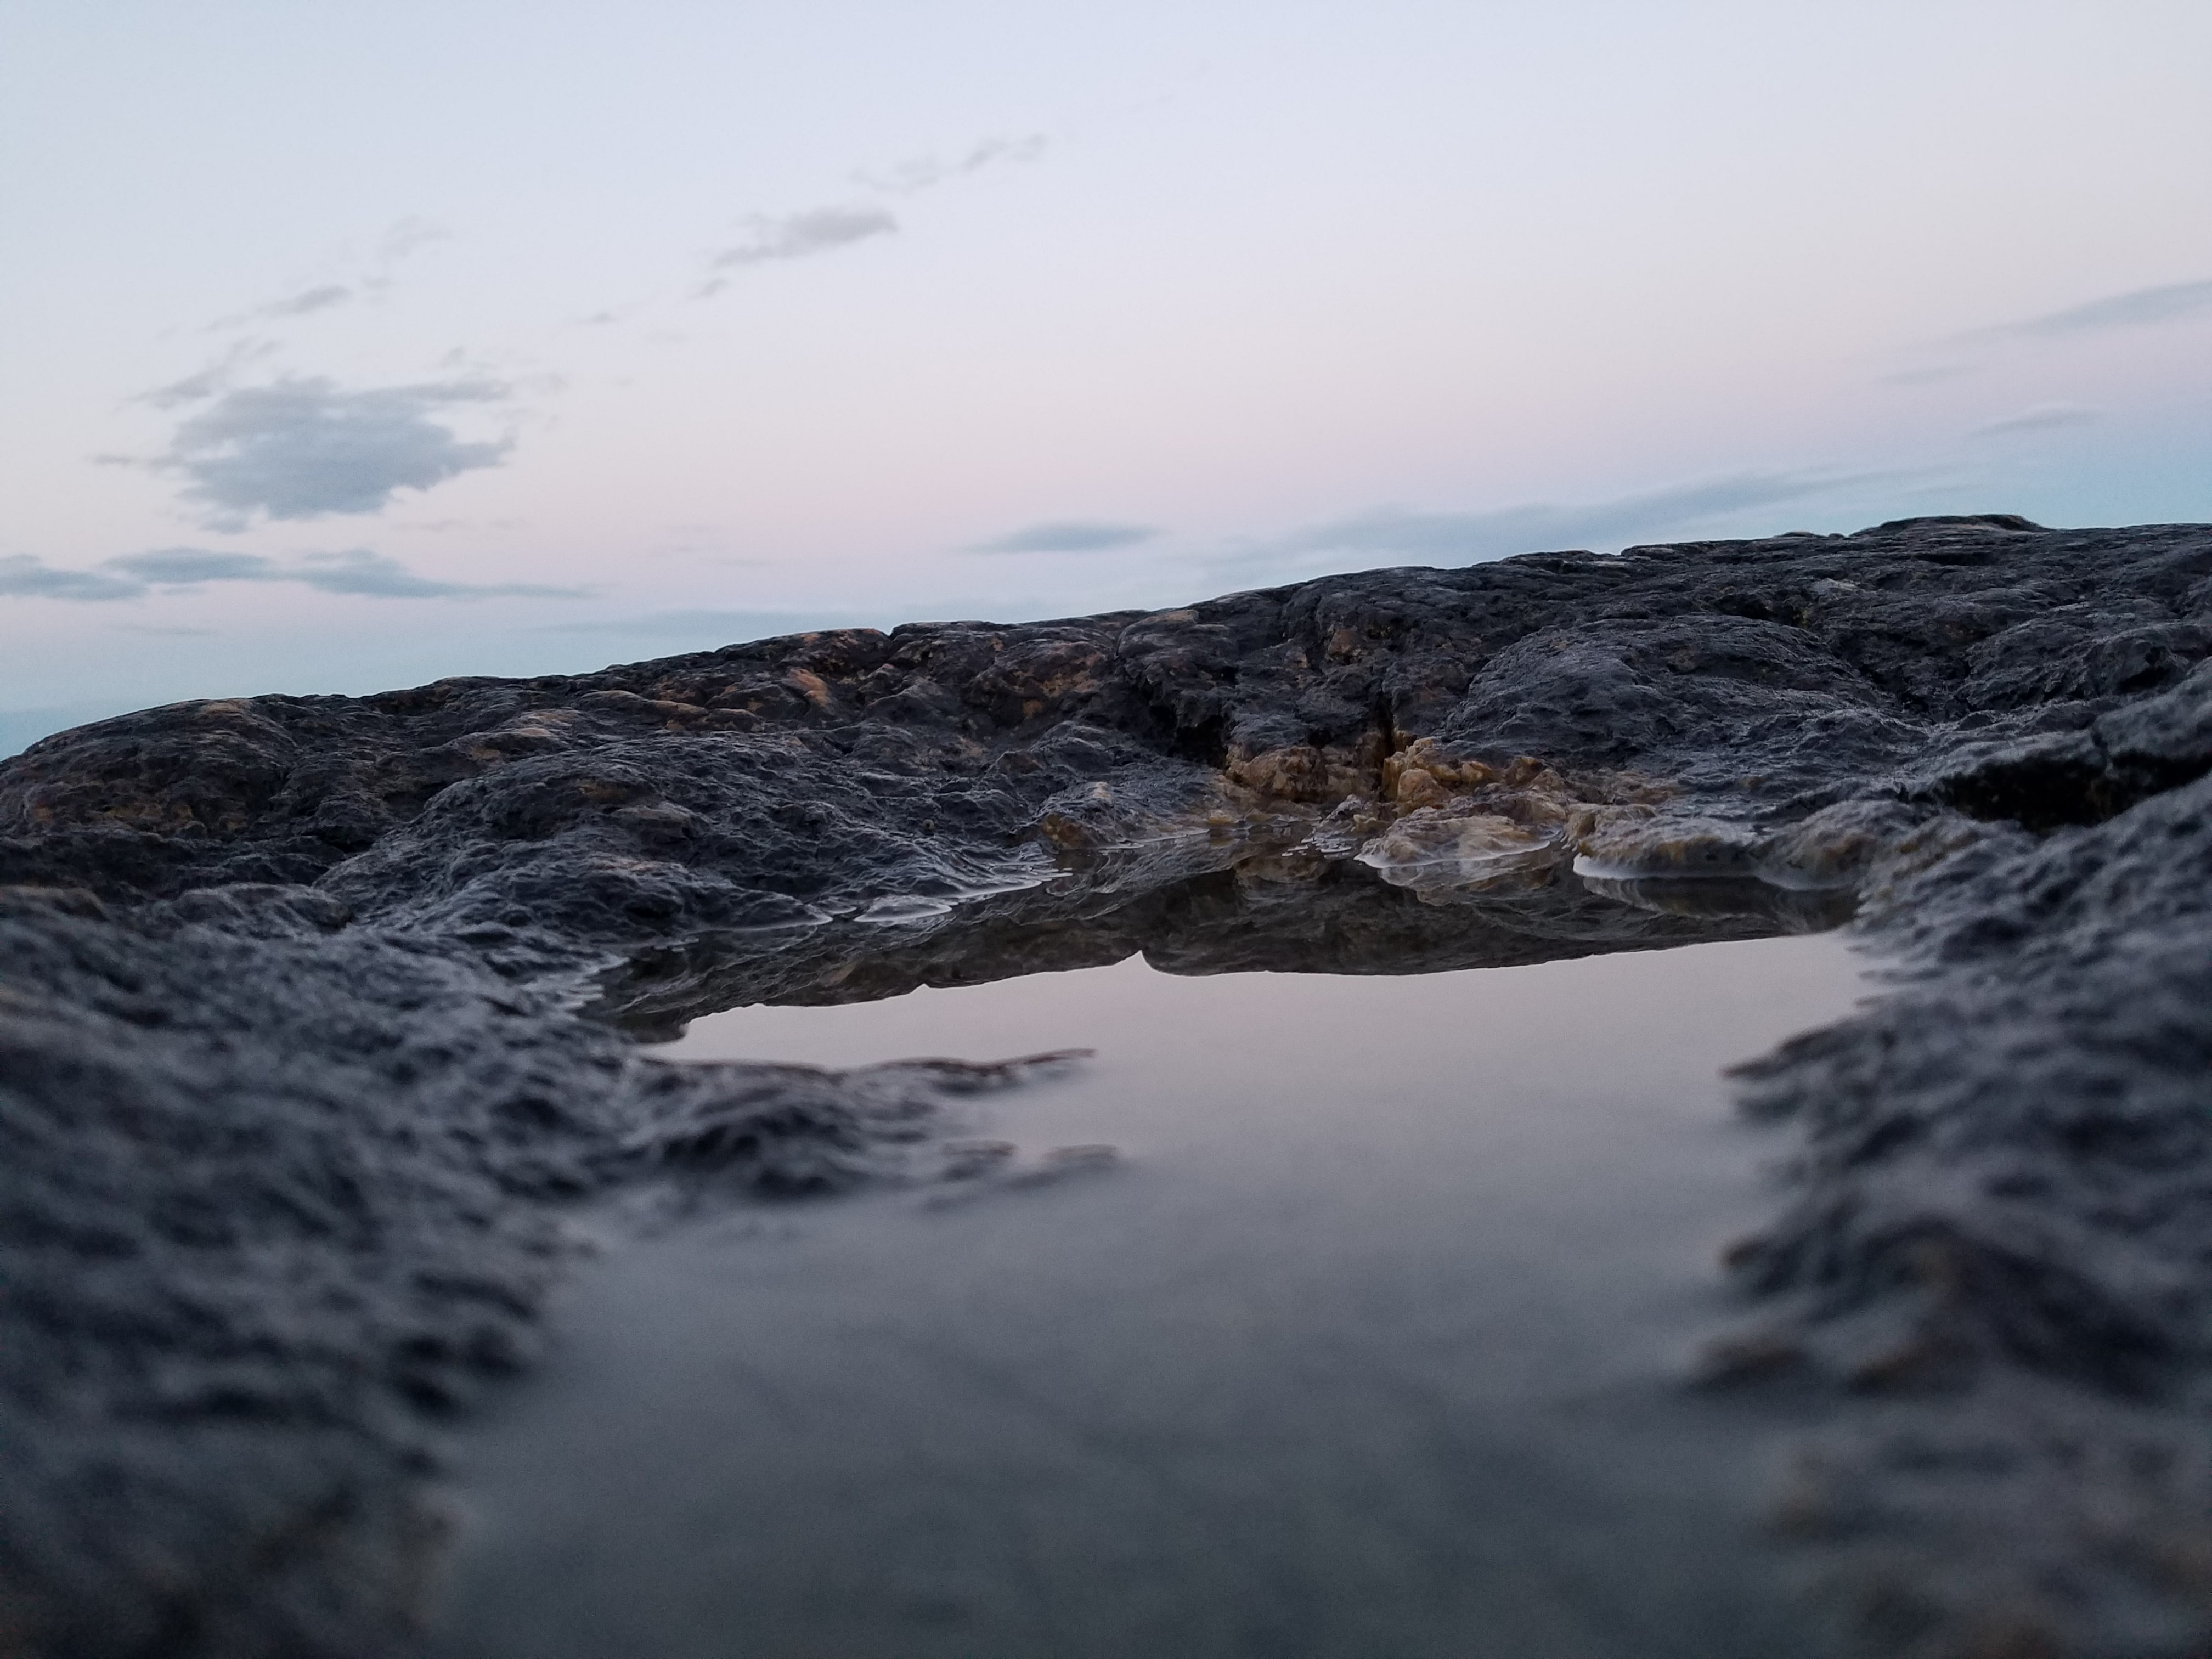 body of water near rock formation at night